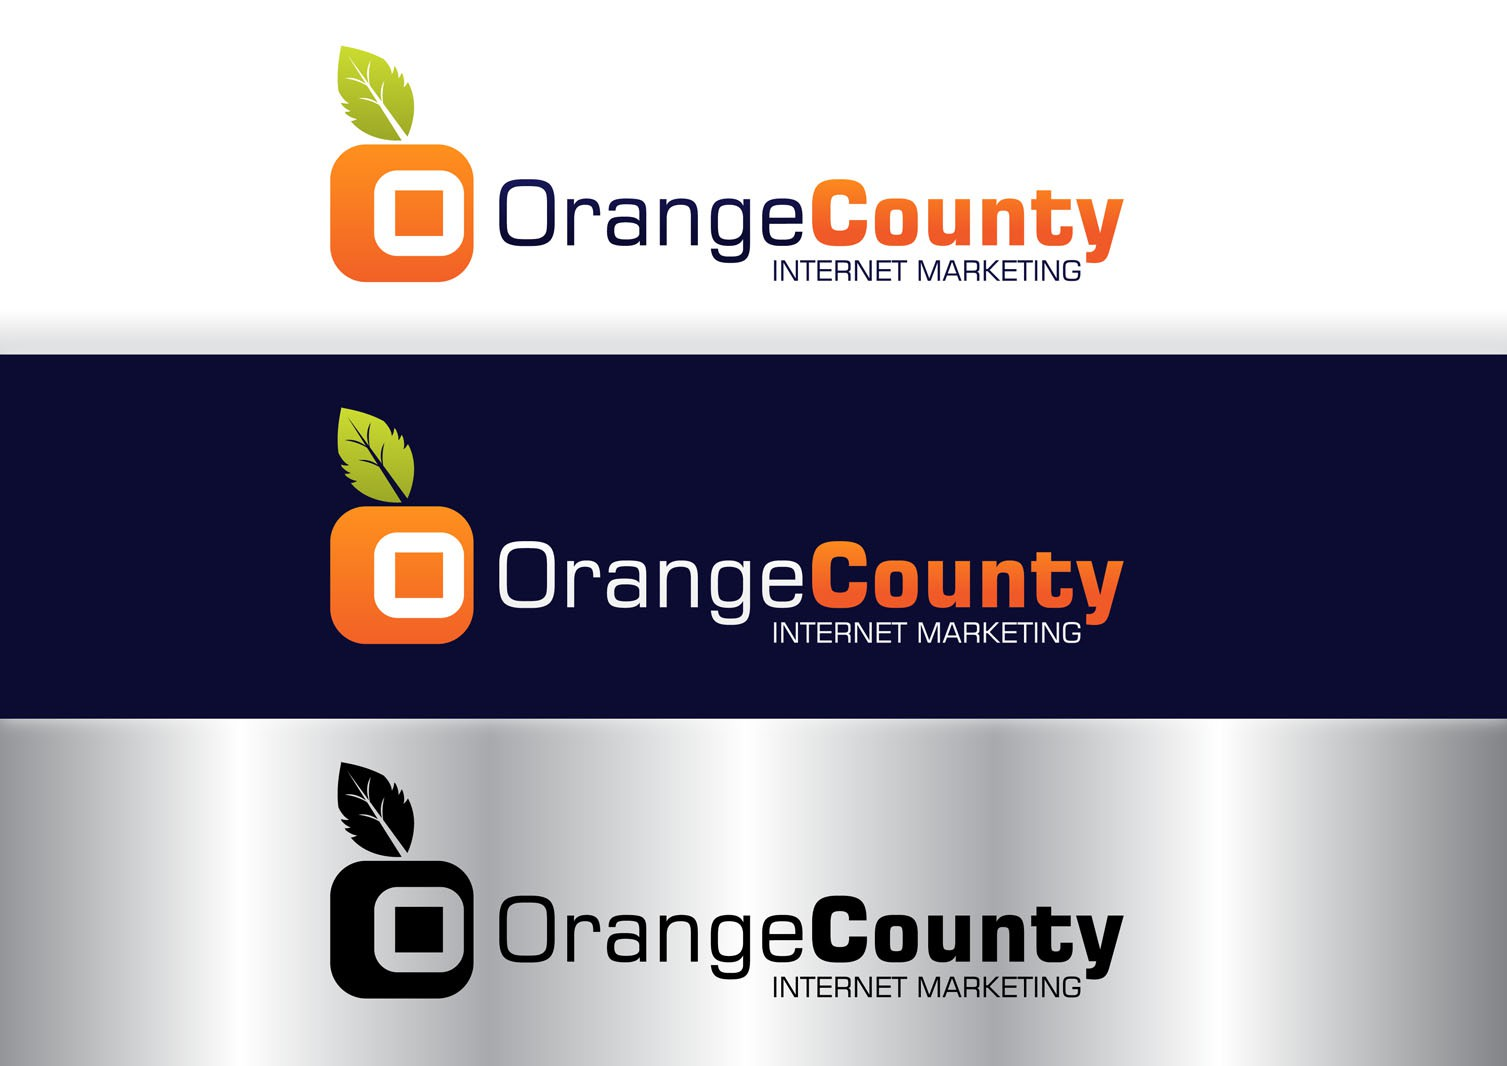 Logo & Favicon for a Business